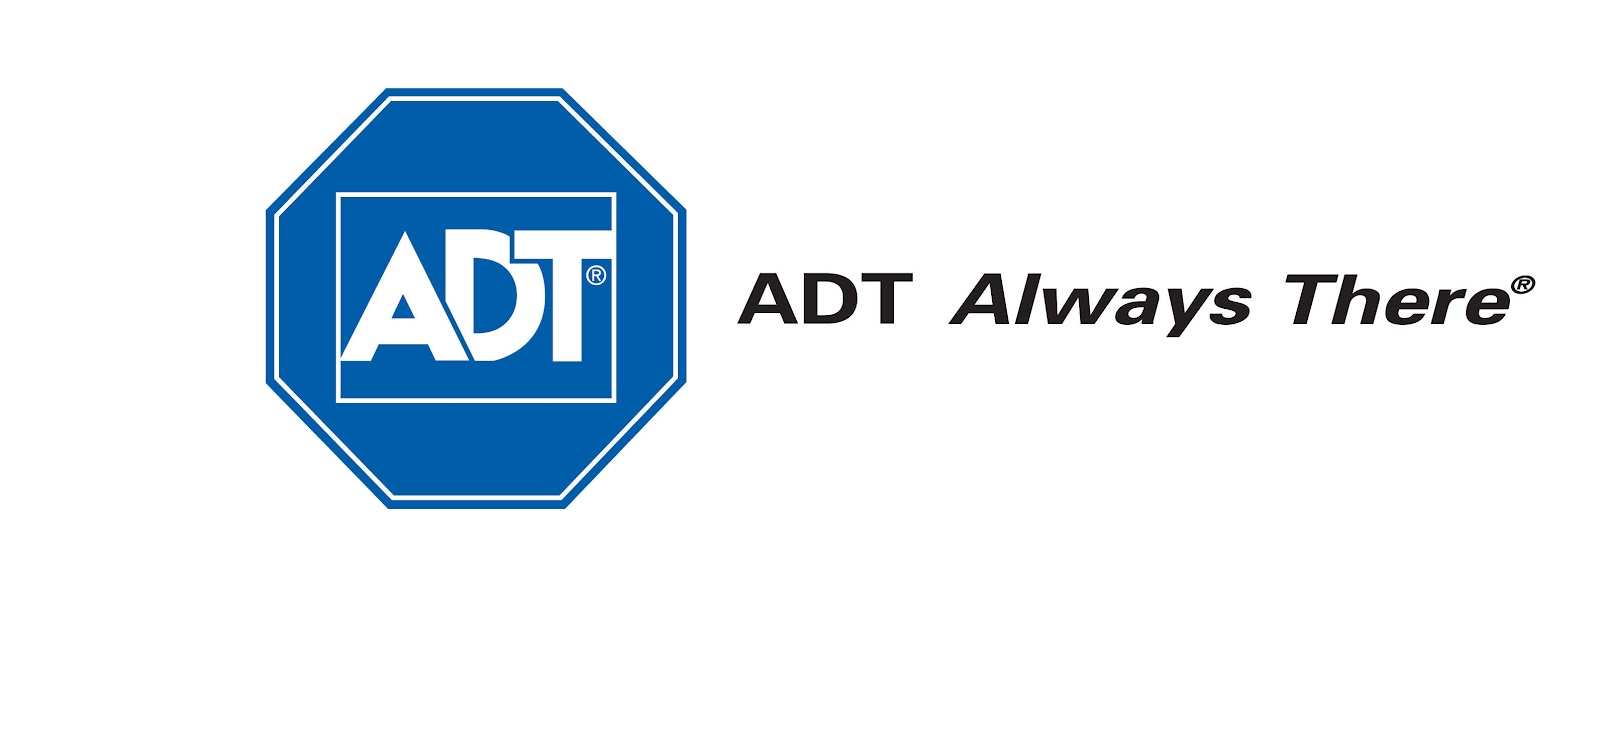 Adt Home Security Systems >> ADT Home & Business Alarm System: About ADT